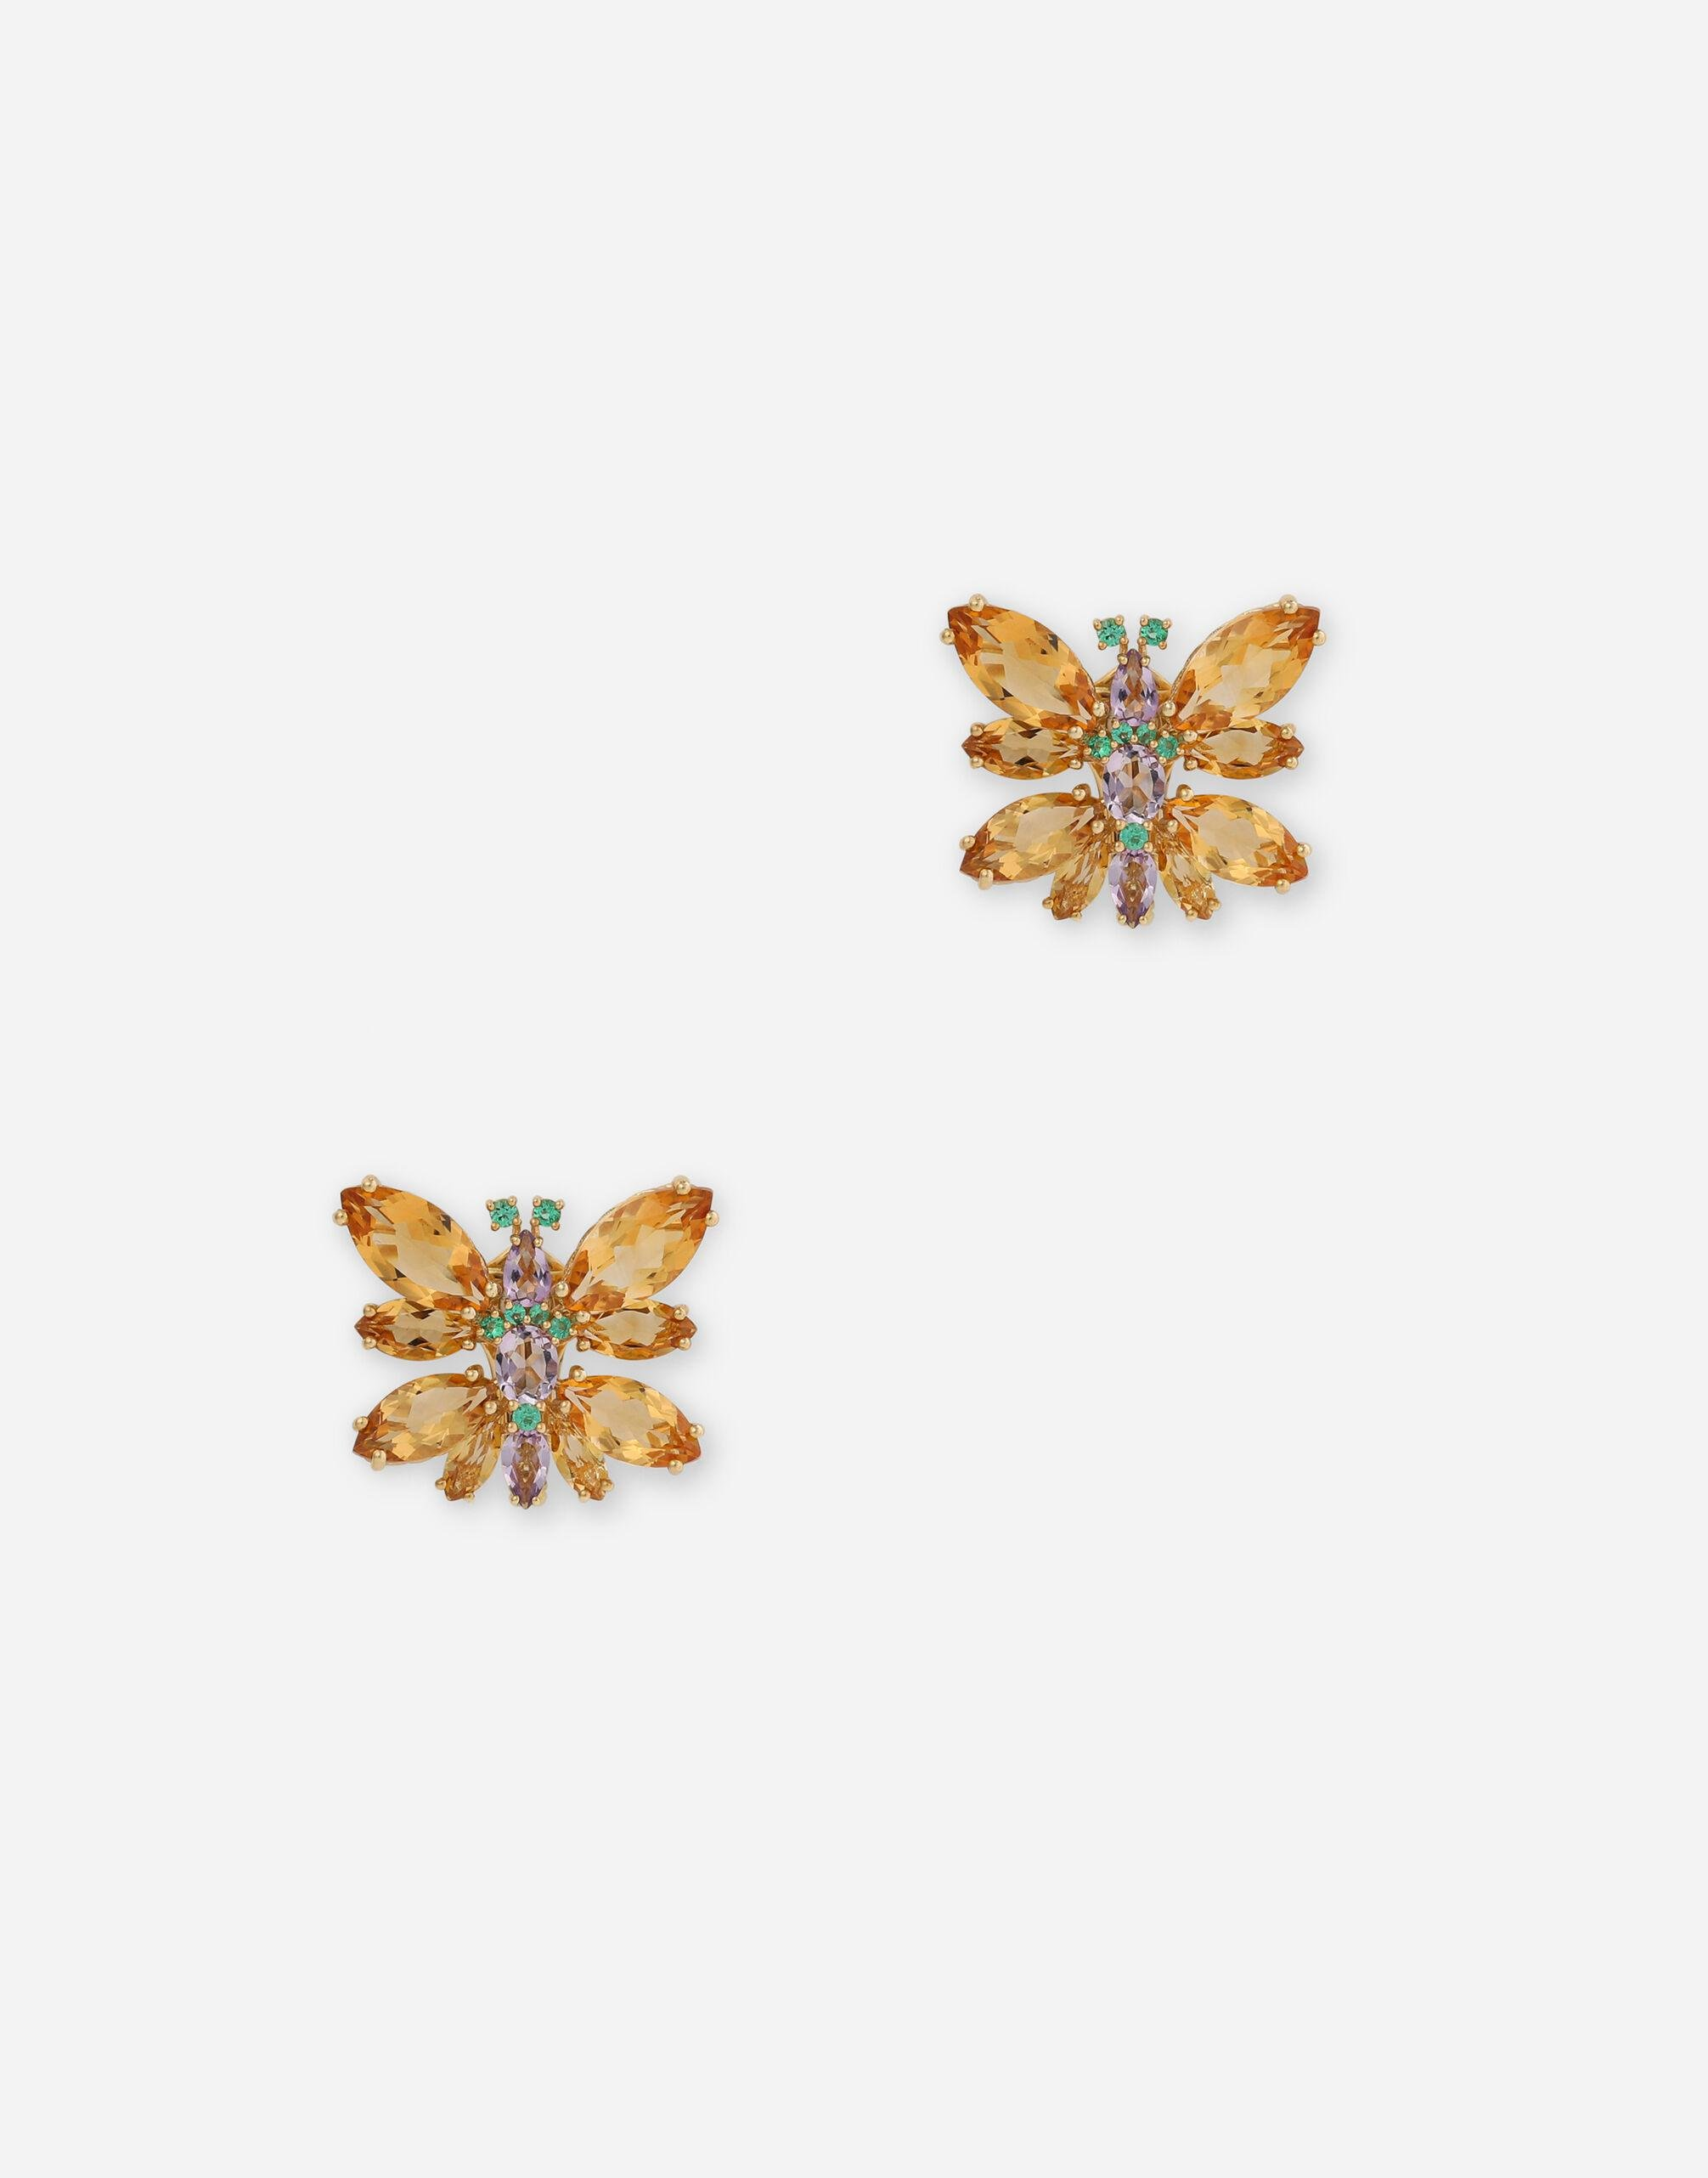 Spring earrings in yellow 18kt gold with citrine butterflies